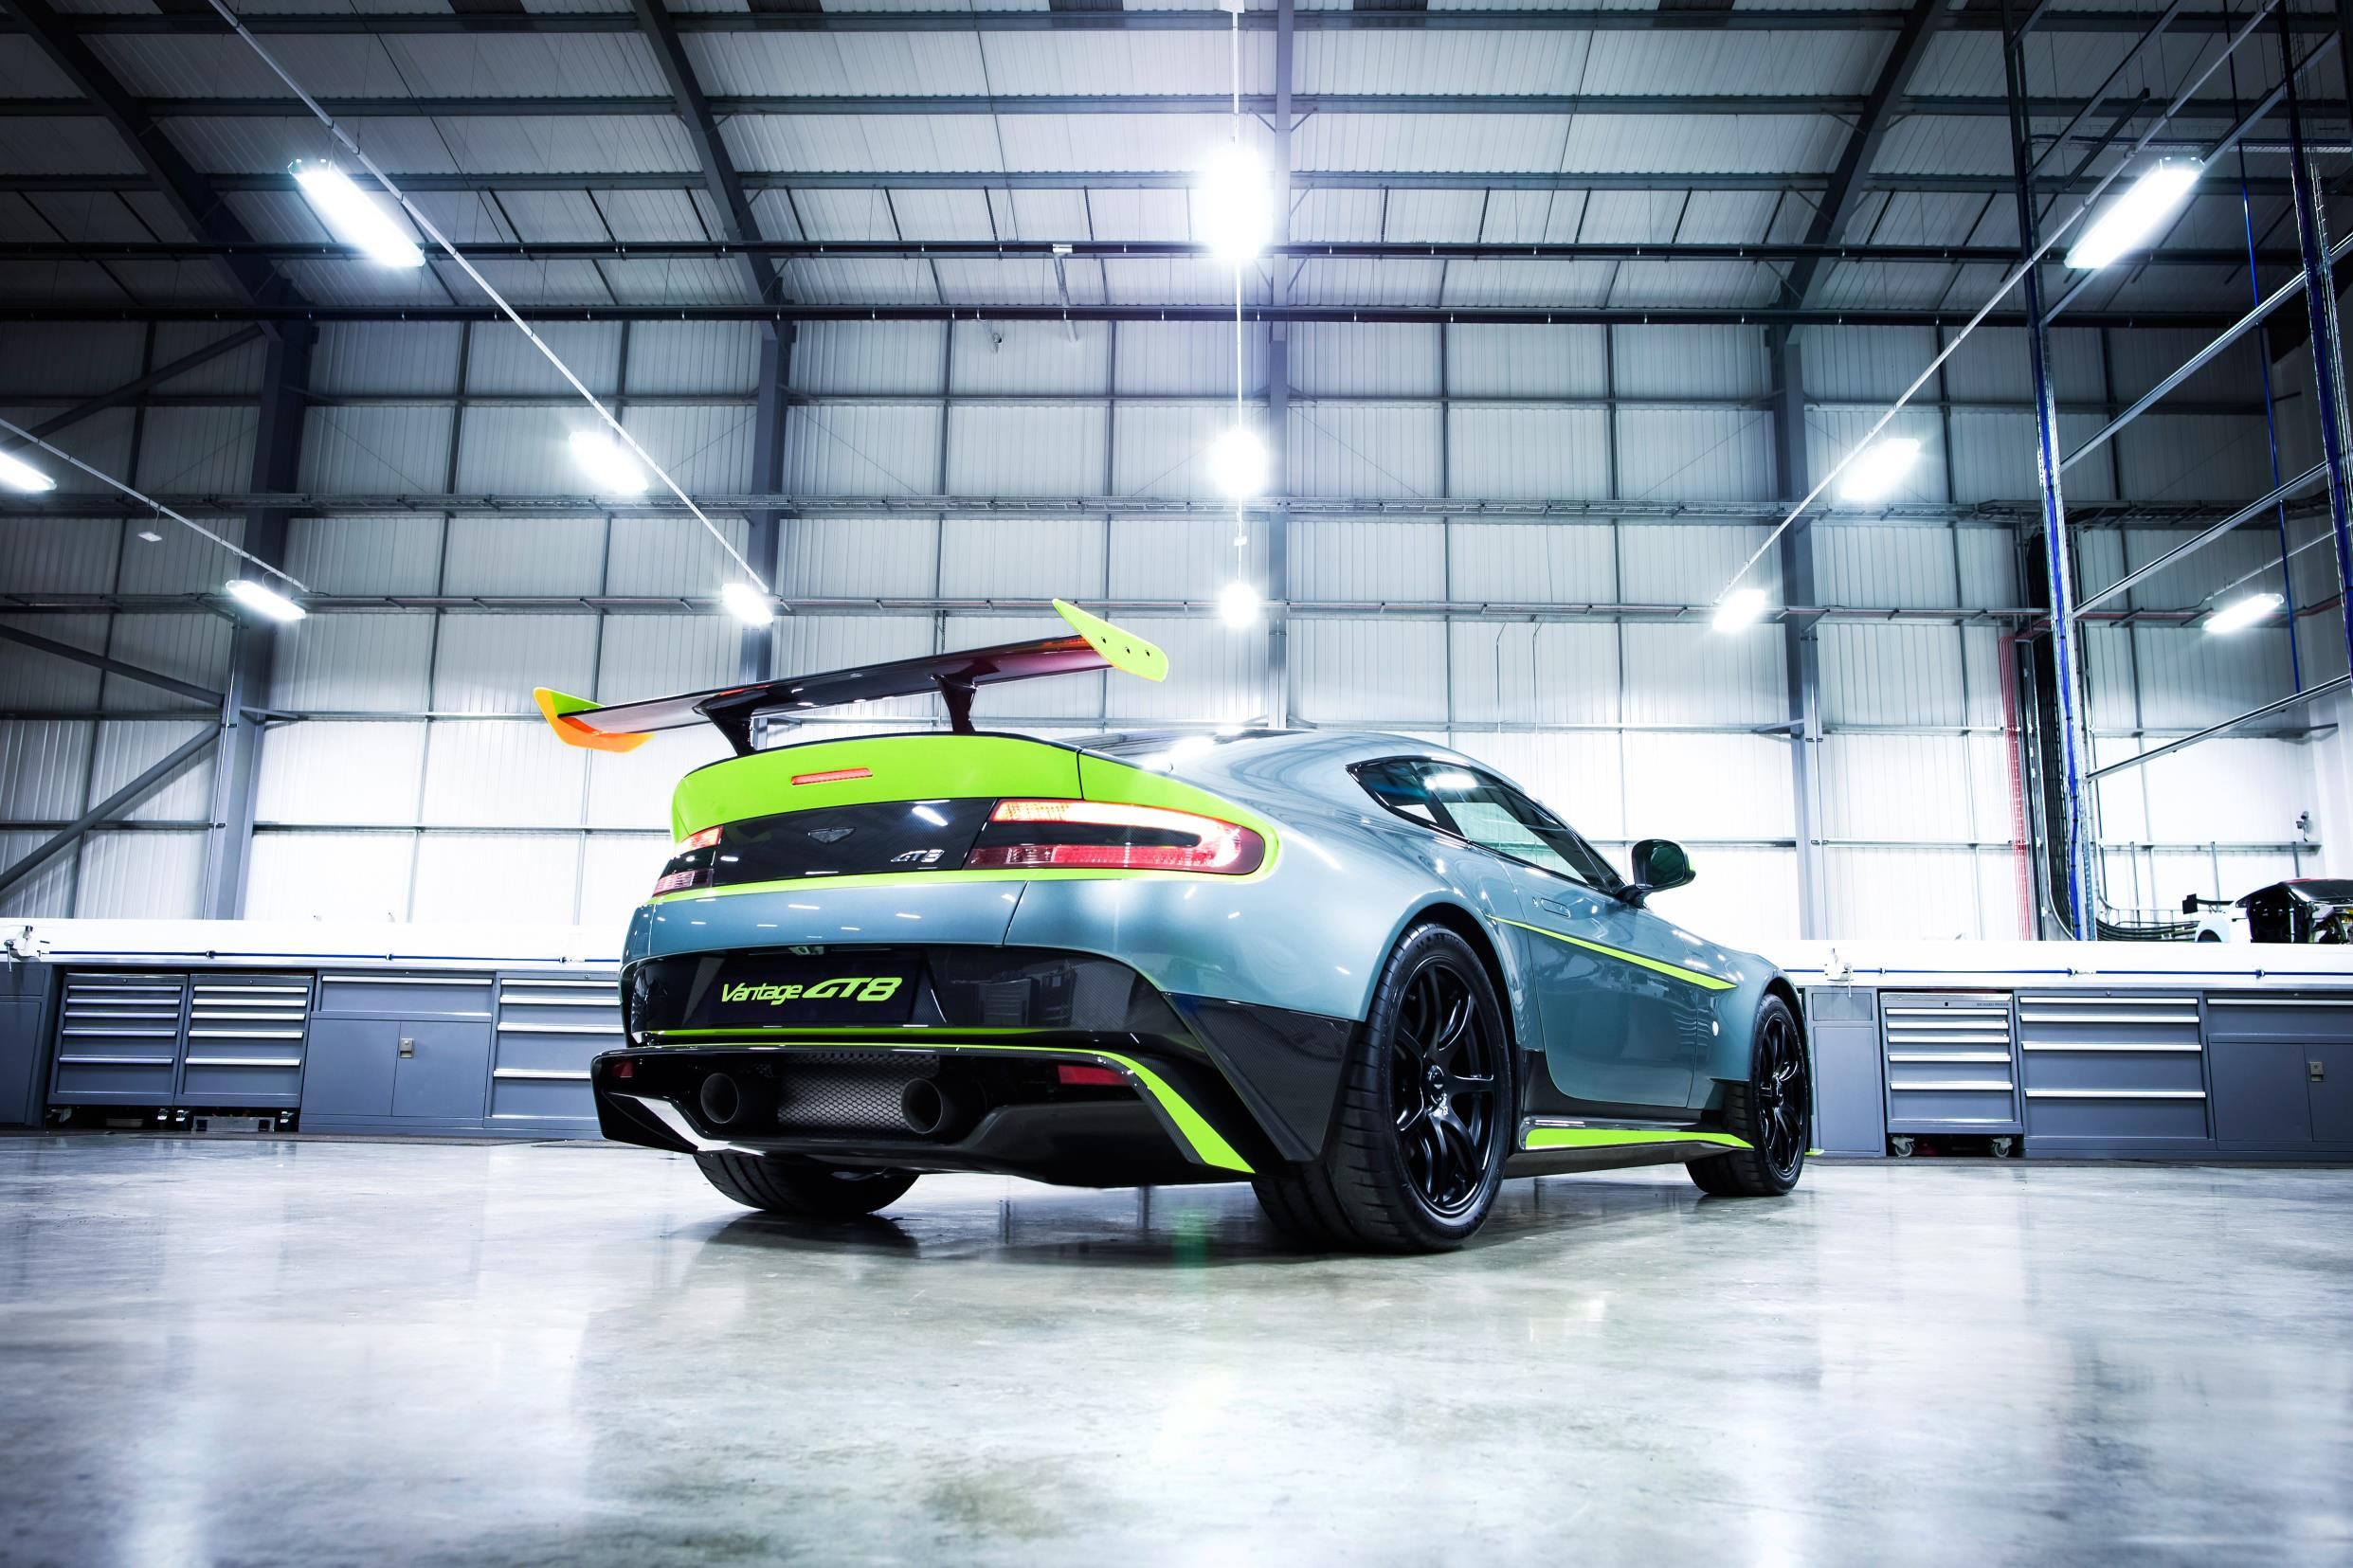 aston-martin-vantage-gt8-turns-the-v8-vantage-up-a-notch_6